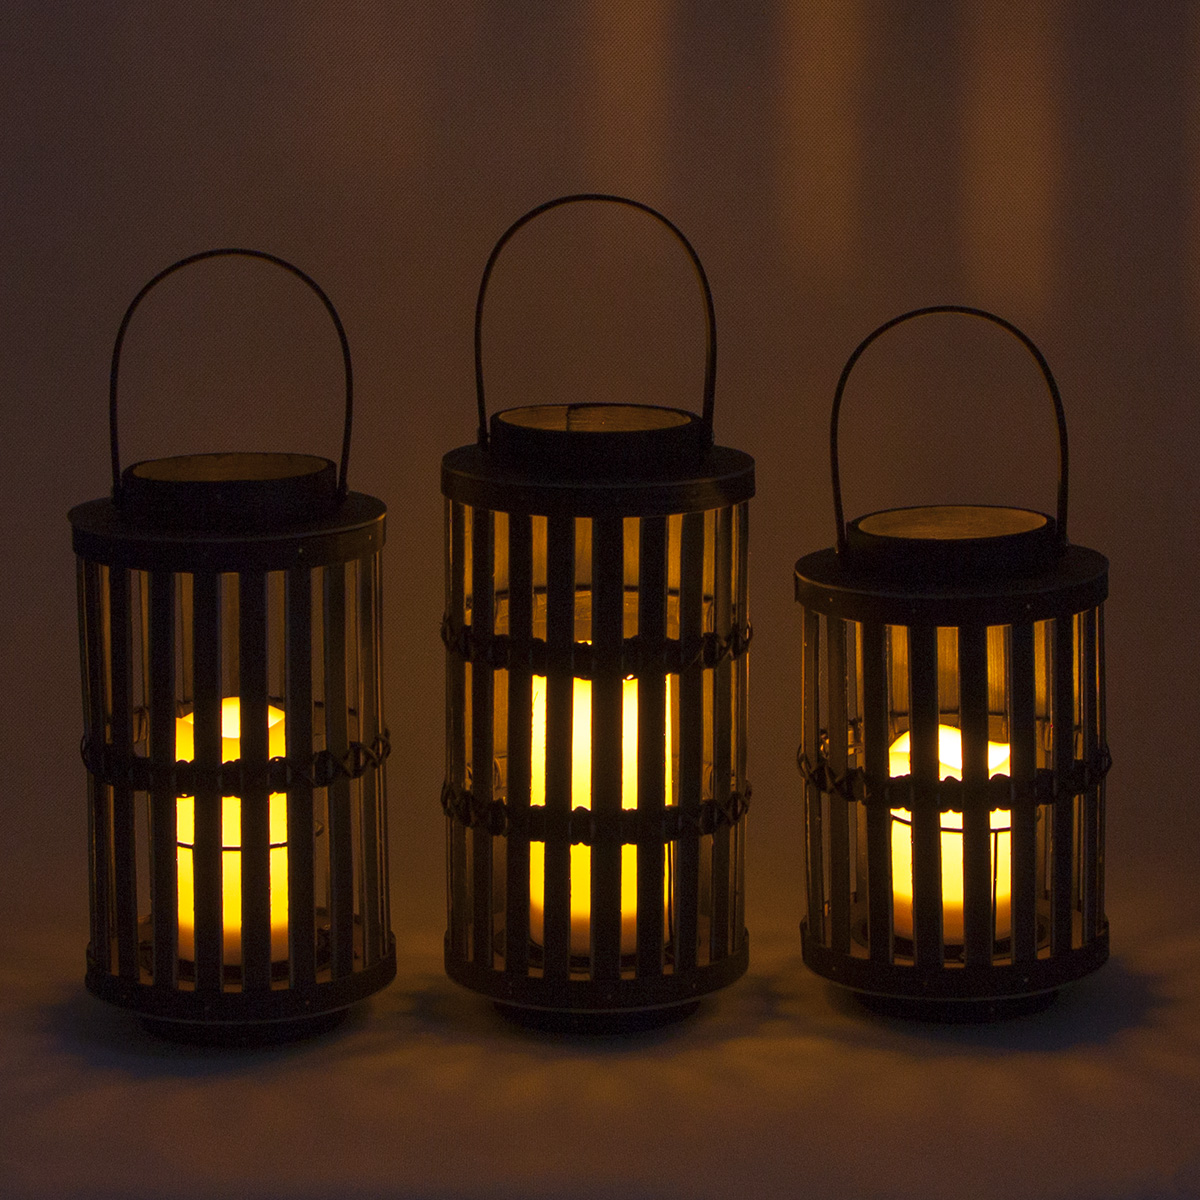 Solar Wood Lantern Garden Party Table Decoration Featured Image